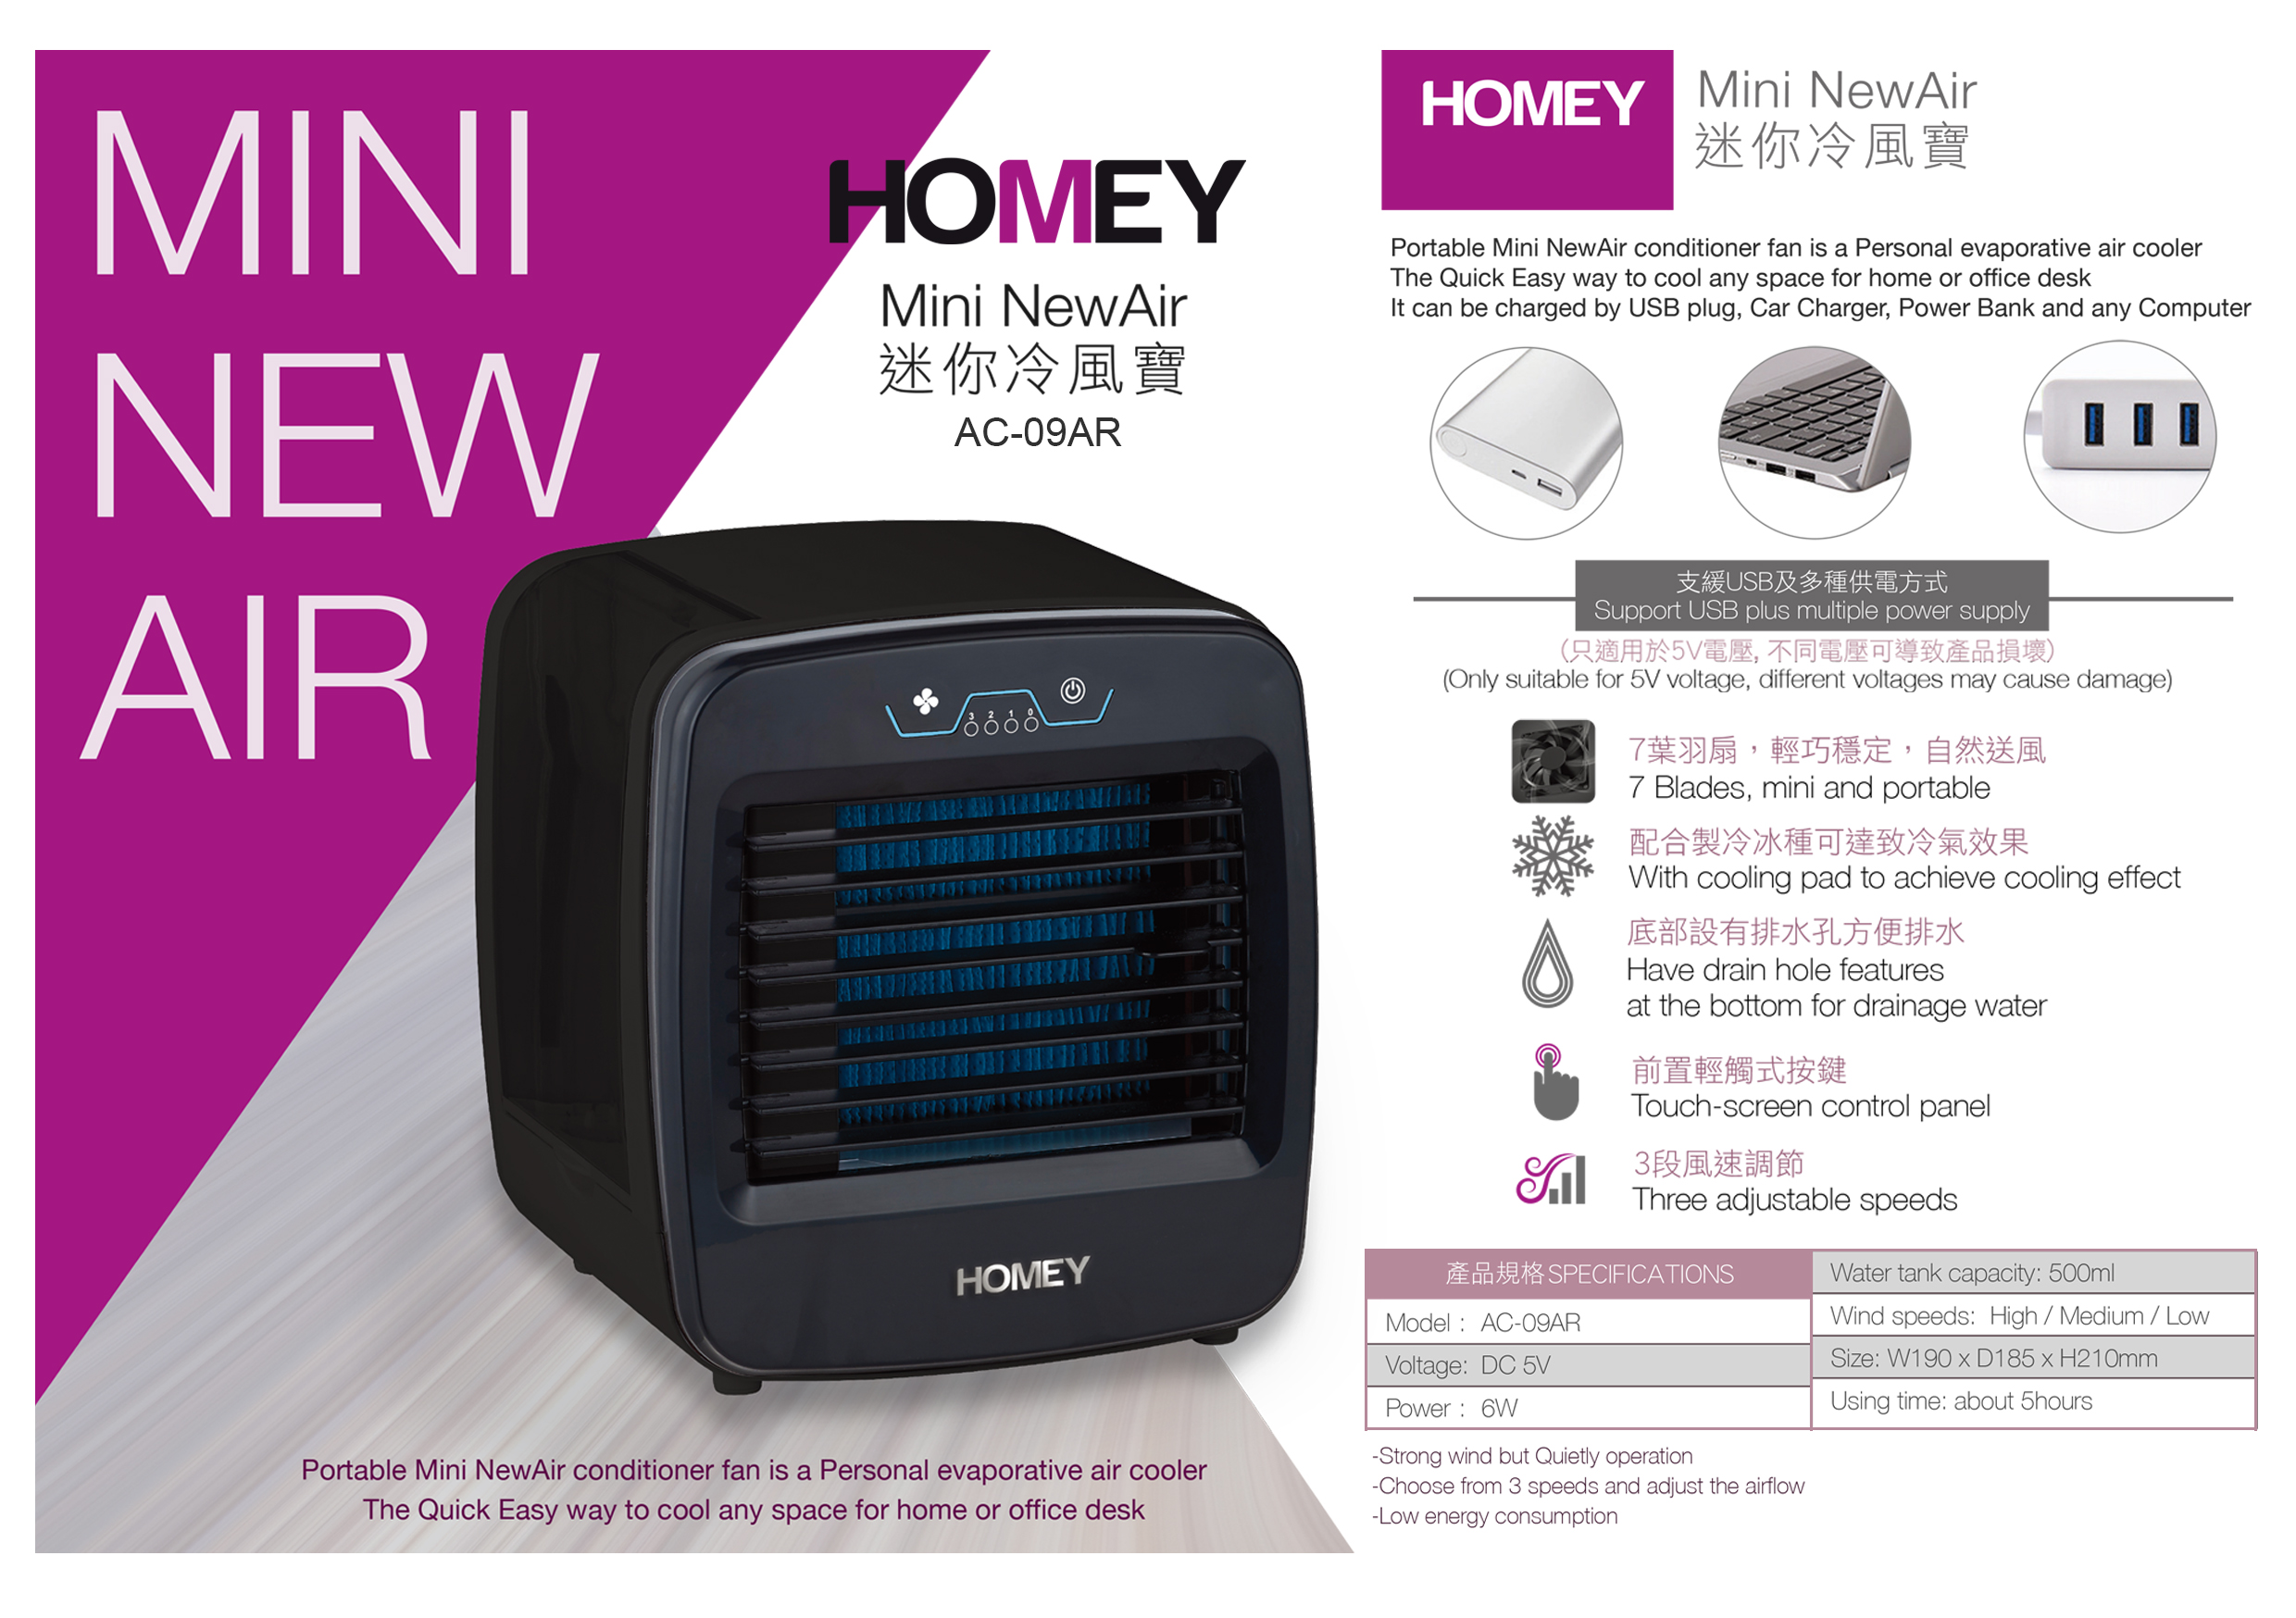 HOMEY | HOMEY - Mini NewAir AC-09AR | HKTVmall Online Shopping